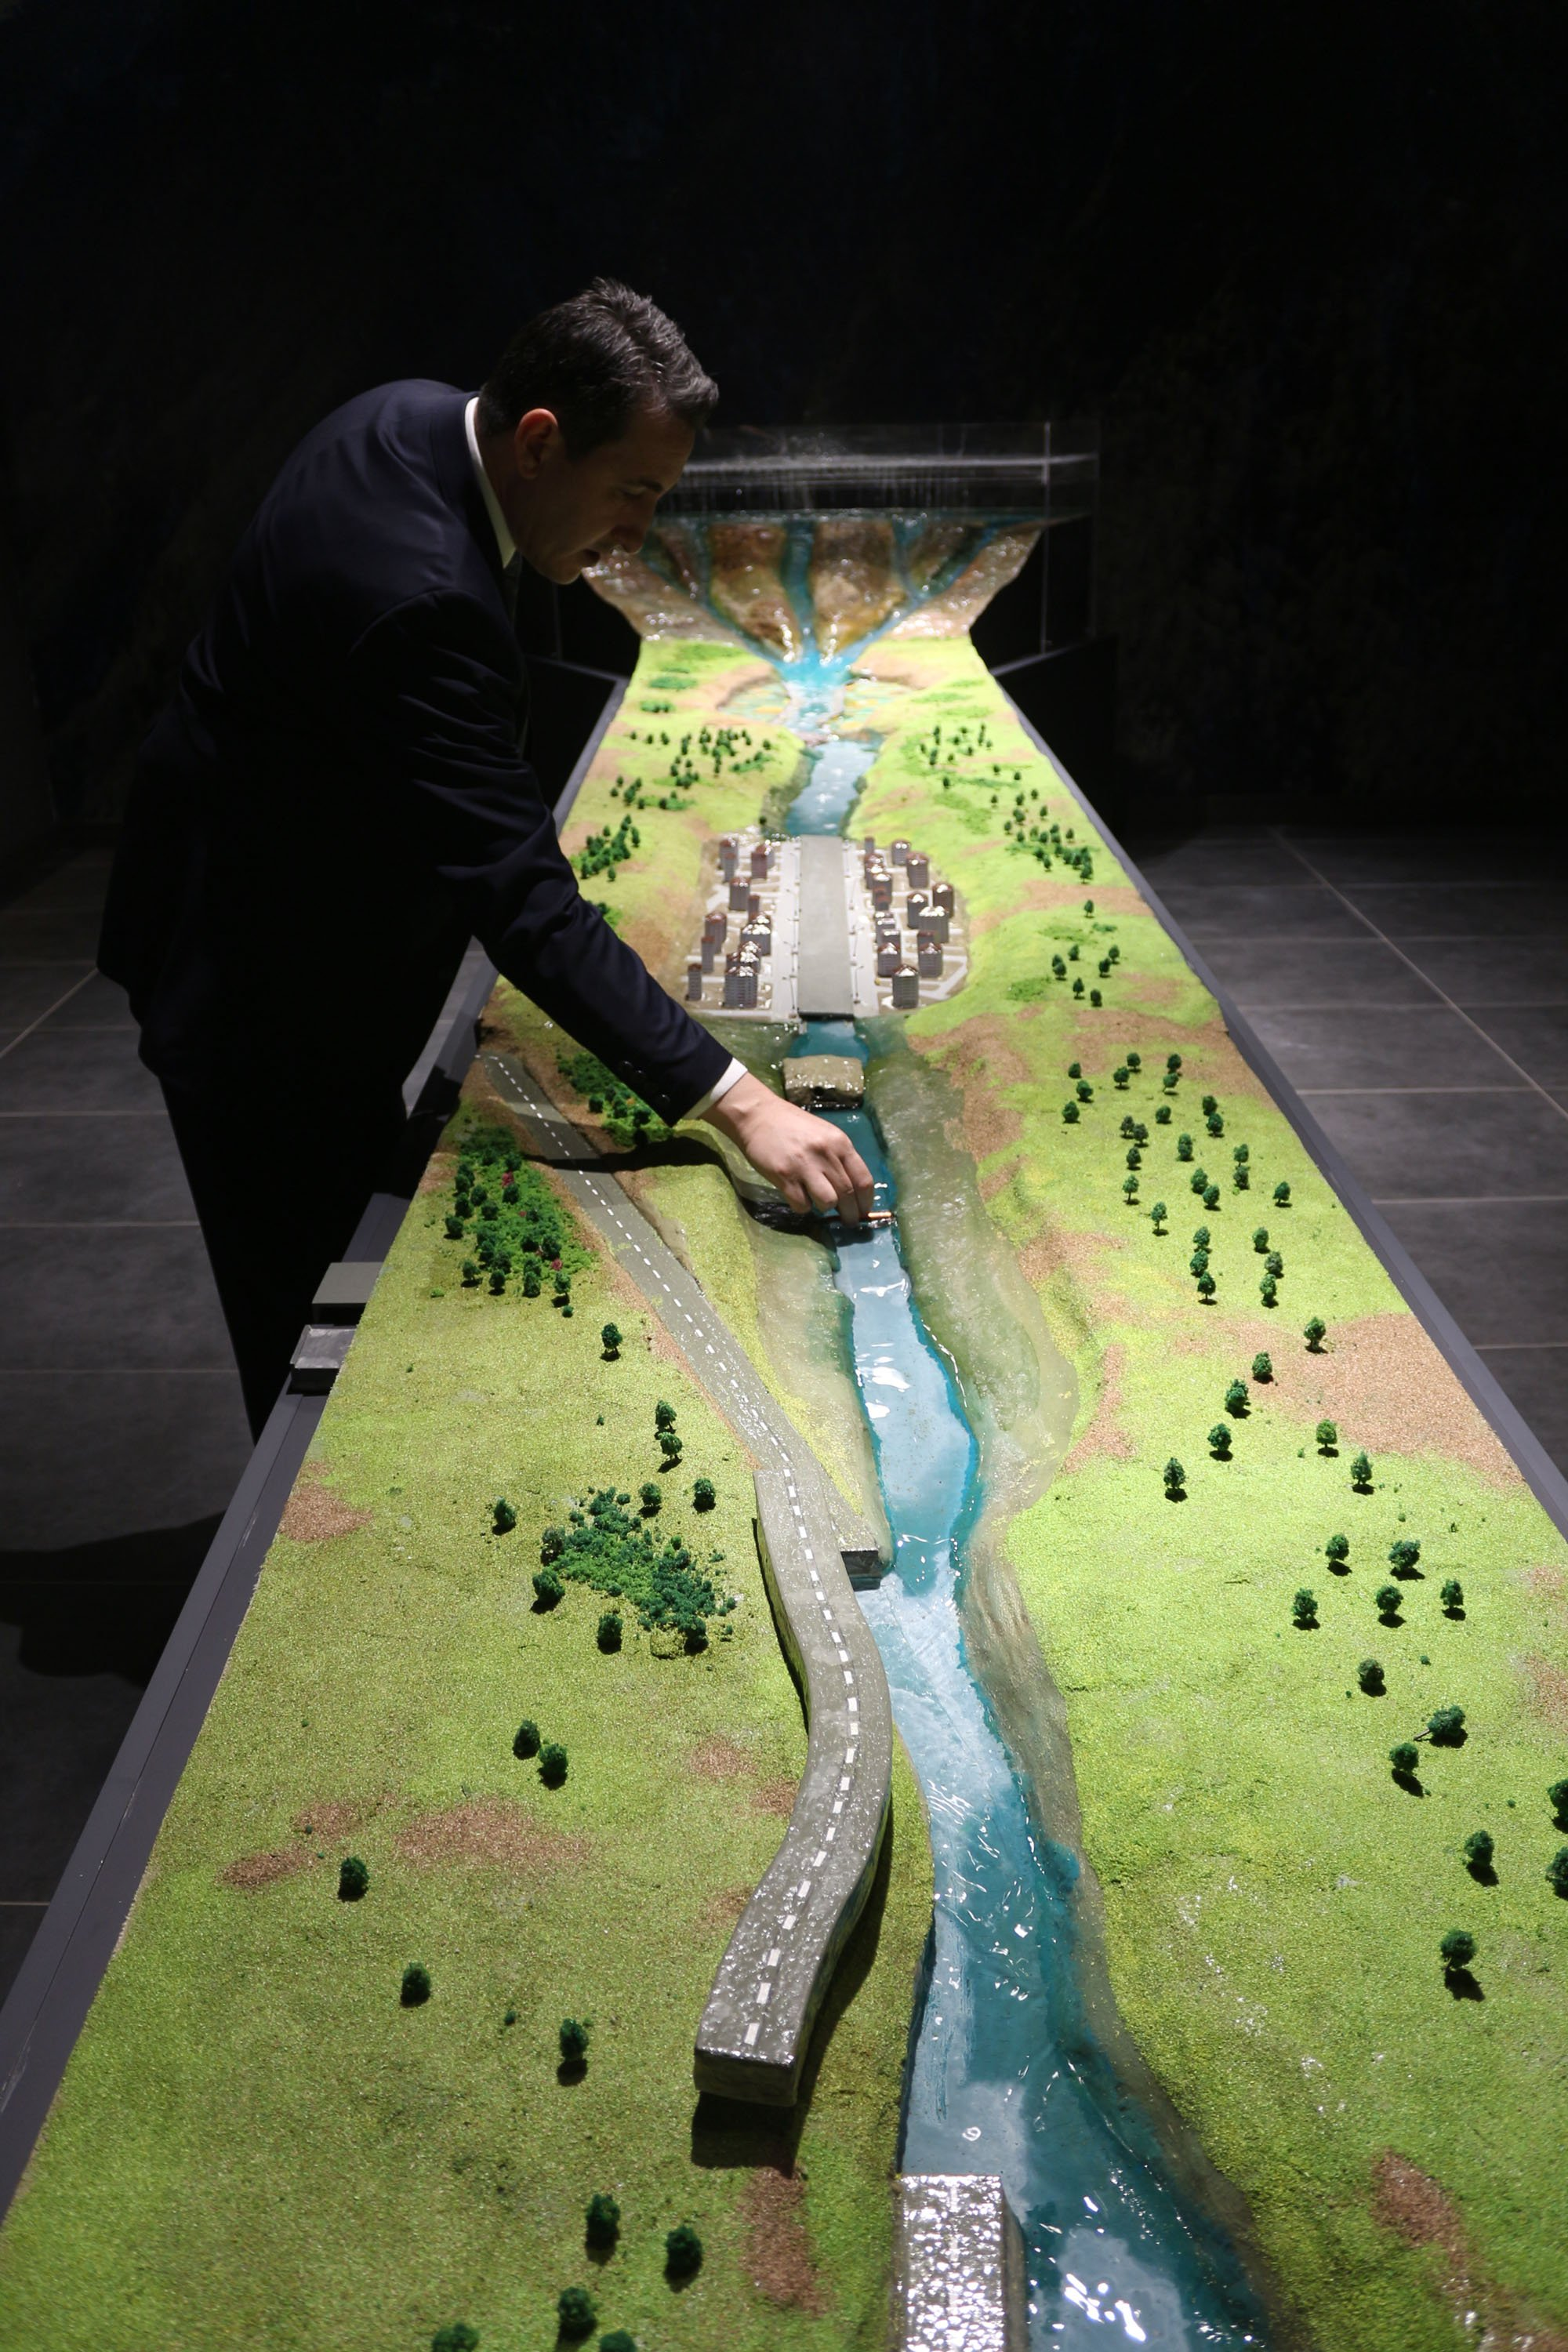 A city flood model at the museum. (DHA Photo)